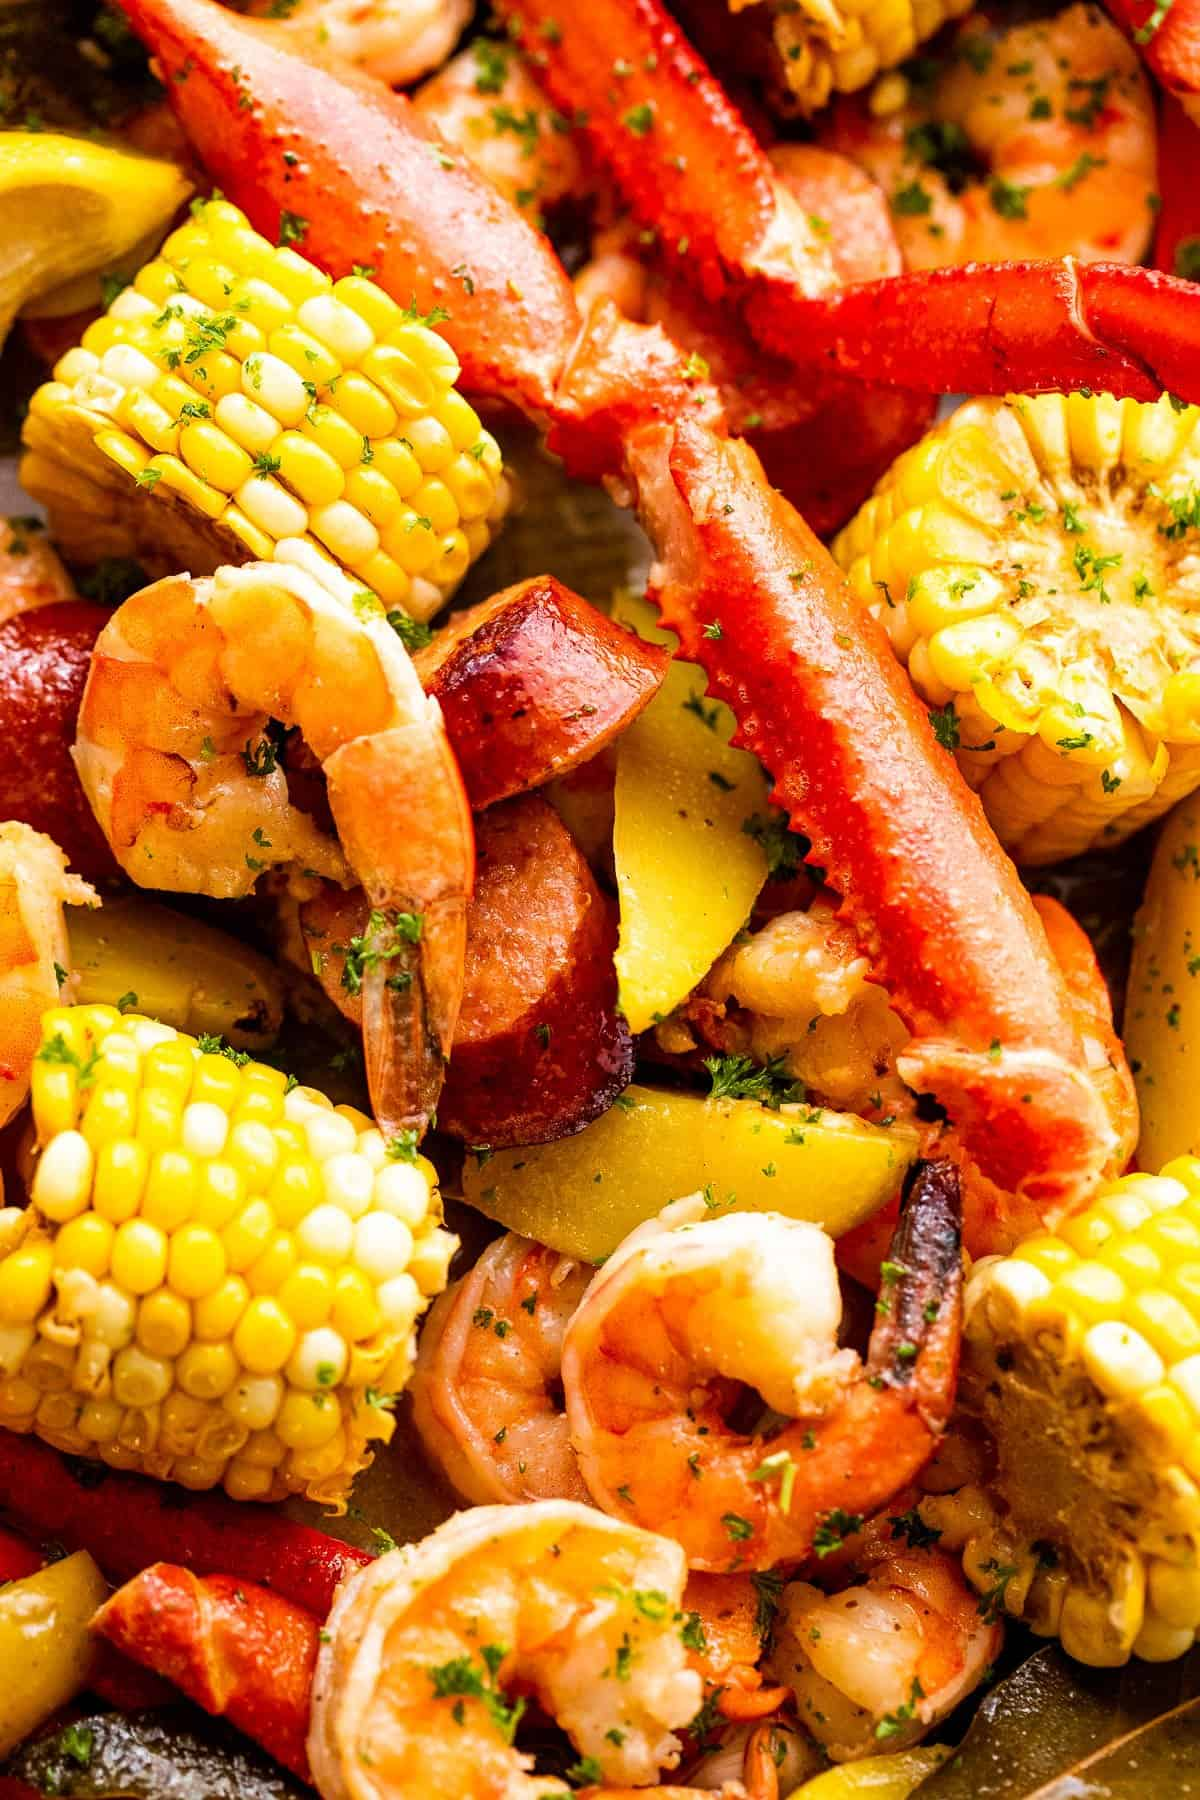 up close shot of seafood boil with crab legs, shrimp, corn, potatoes, and sausages